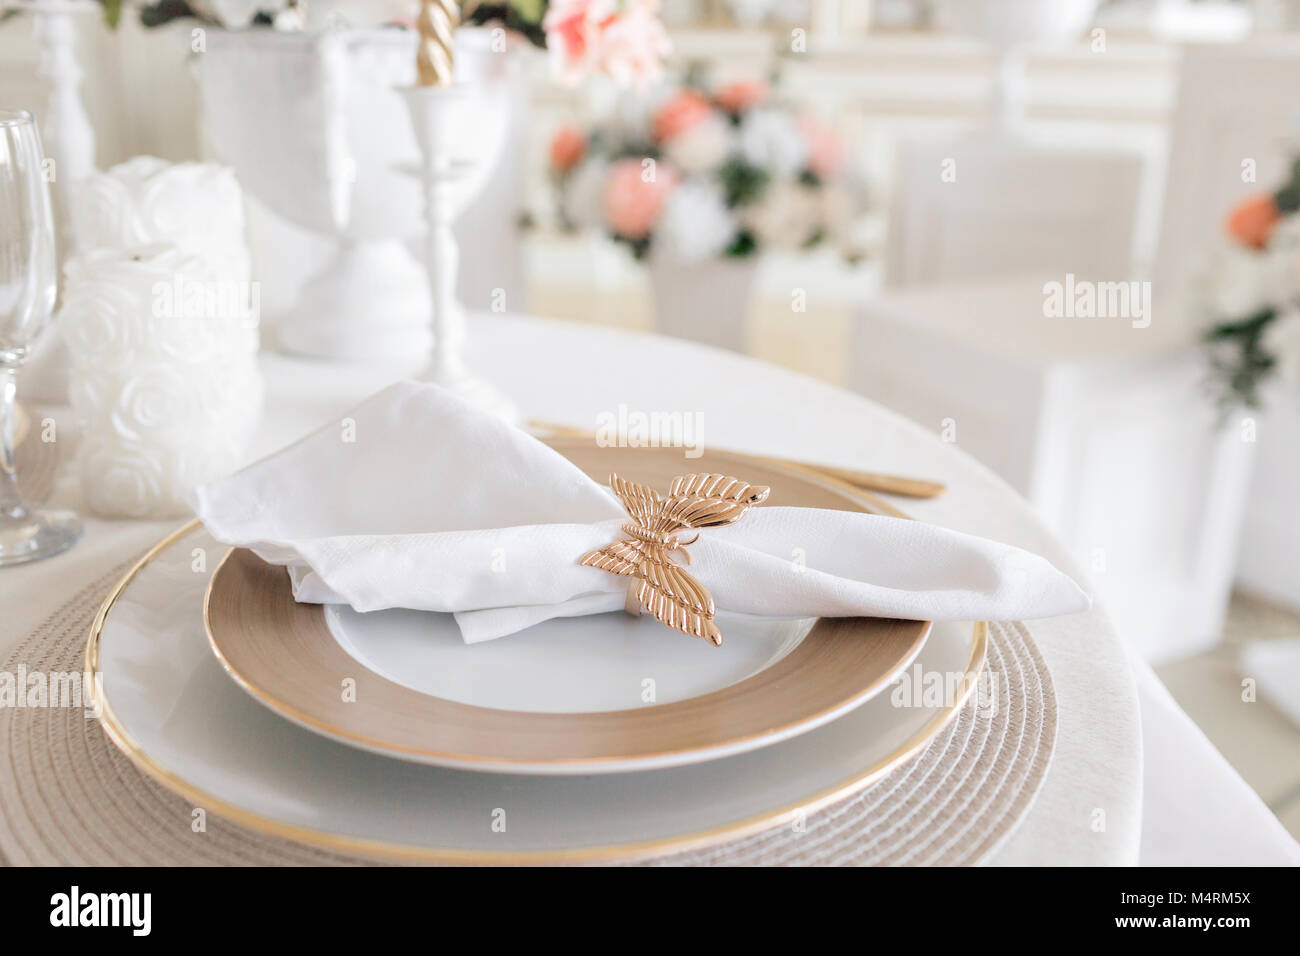 Close Up Layout Of The Festive Table. Decorated Table And Chairs For A  Festive Dinner. Luxury Decor With Daylight. Modern Photographic Studio.